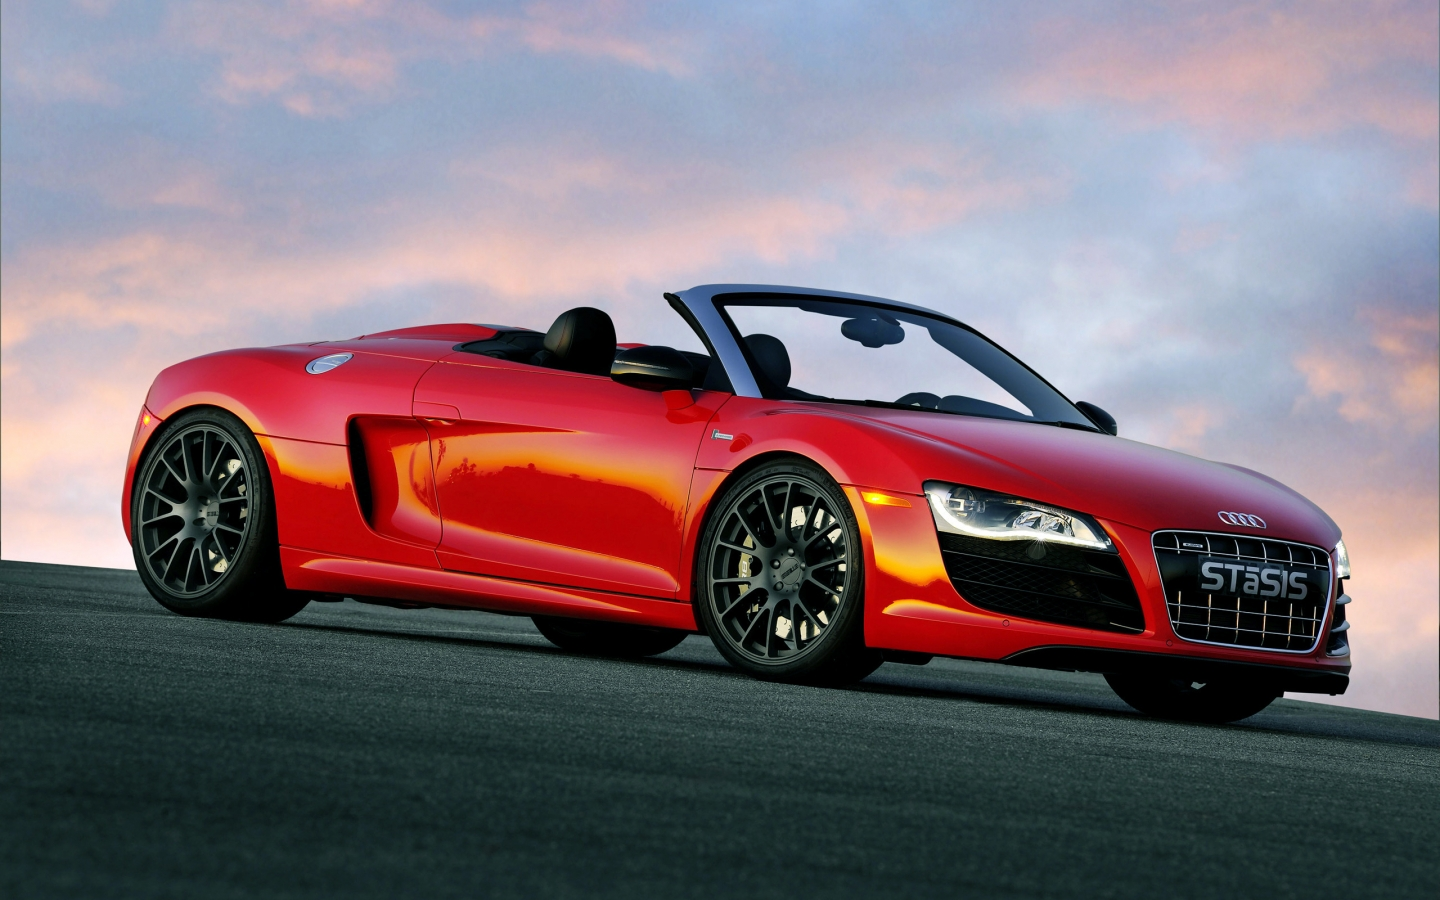 Stasis Audi R8 V10 for 1440 x 900 widescreen resolution